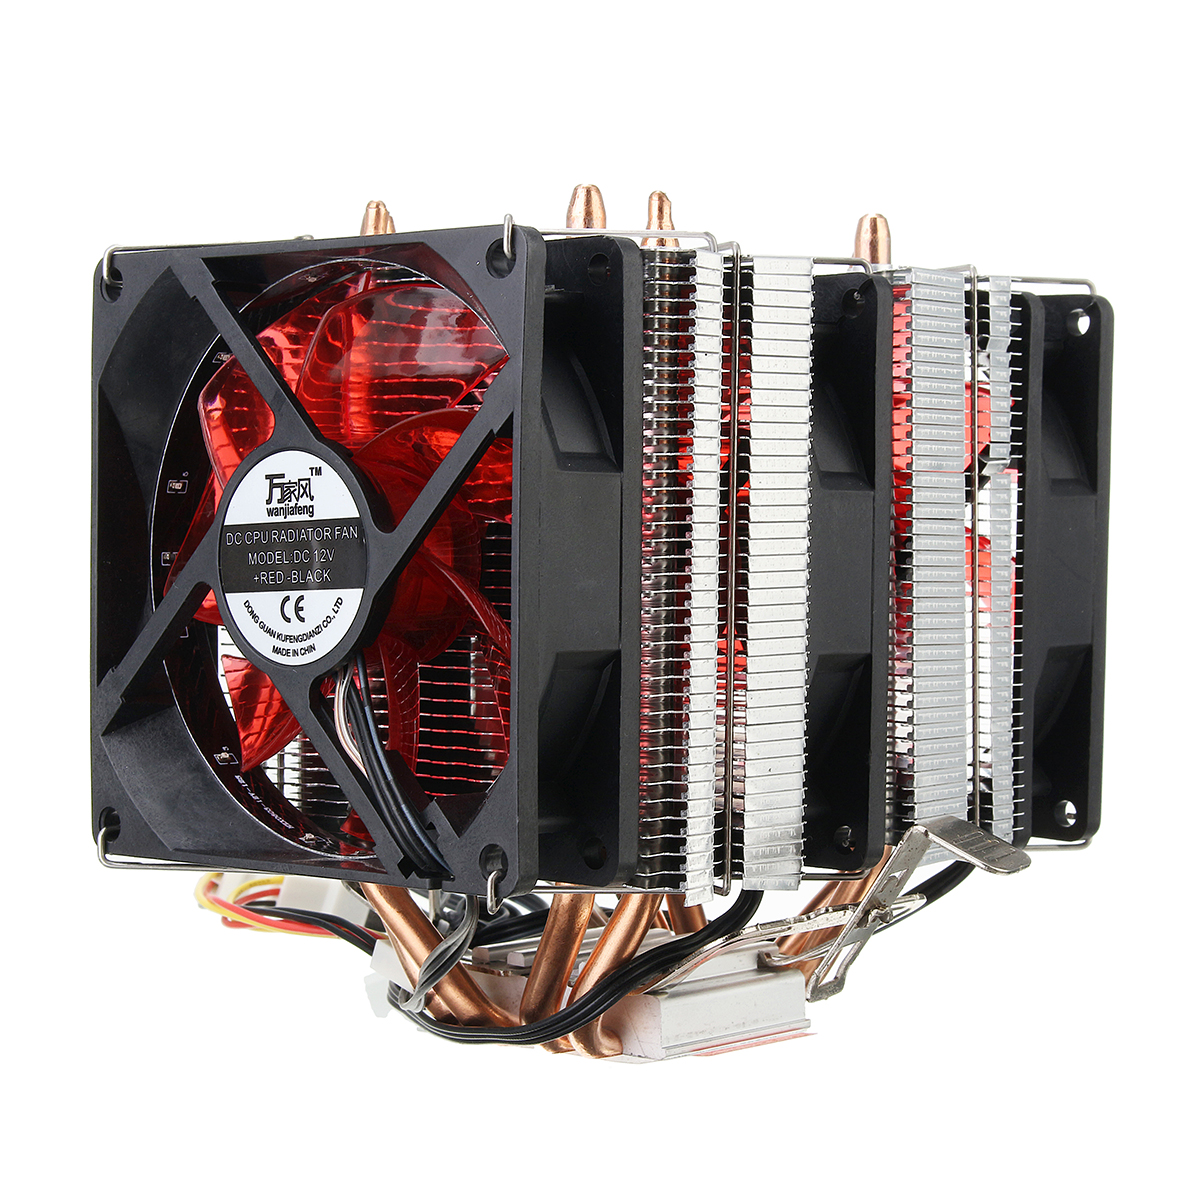 4 Heat Pipes Red Led 3 CPU Cooling Cooler Fan Heat Sink